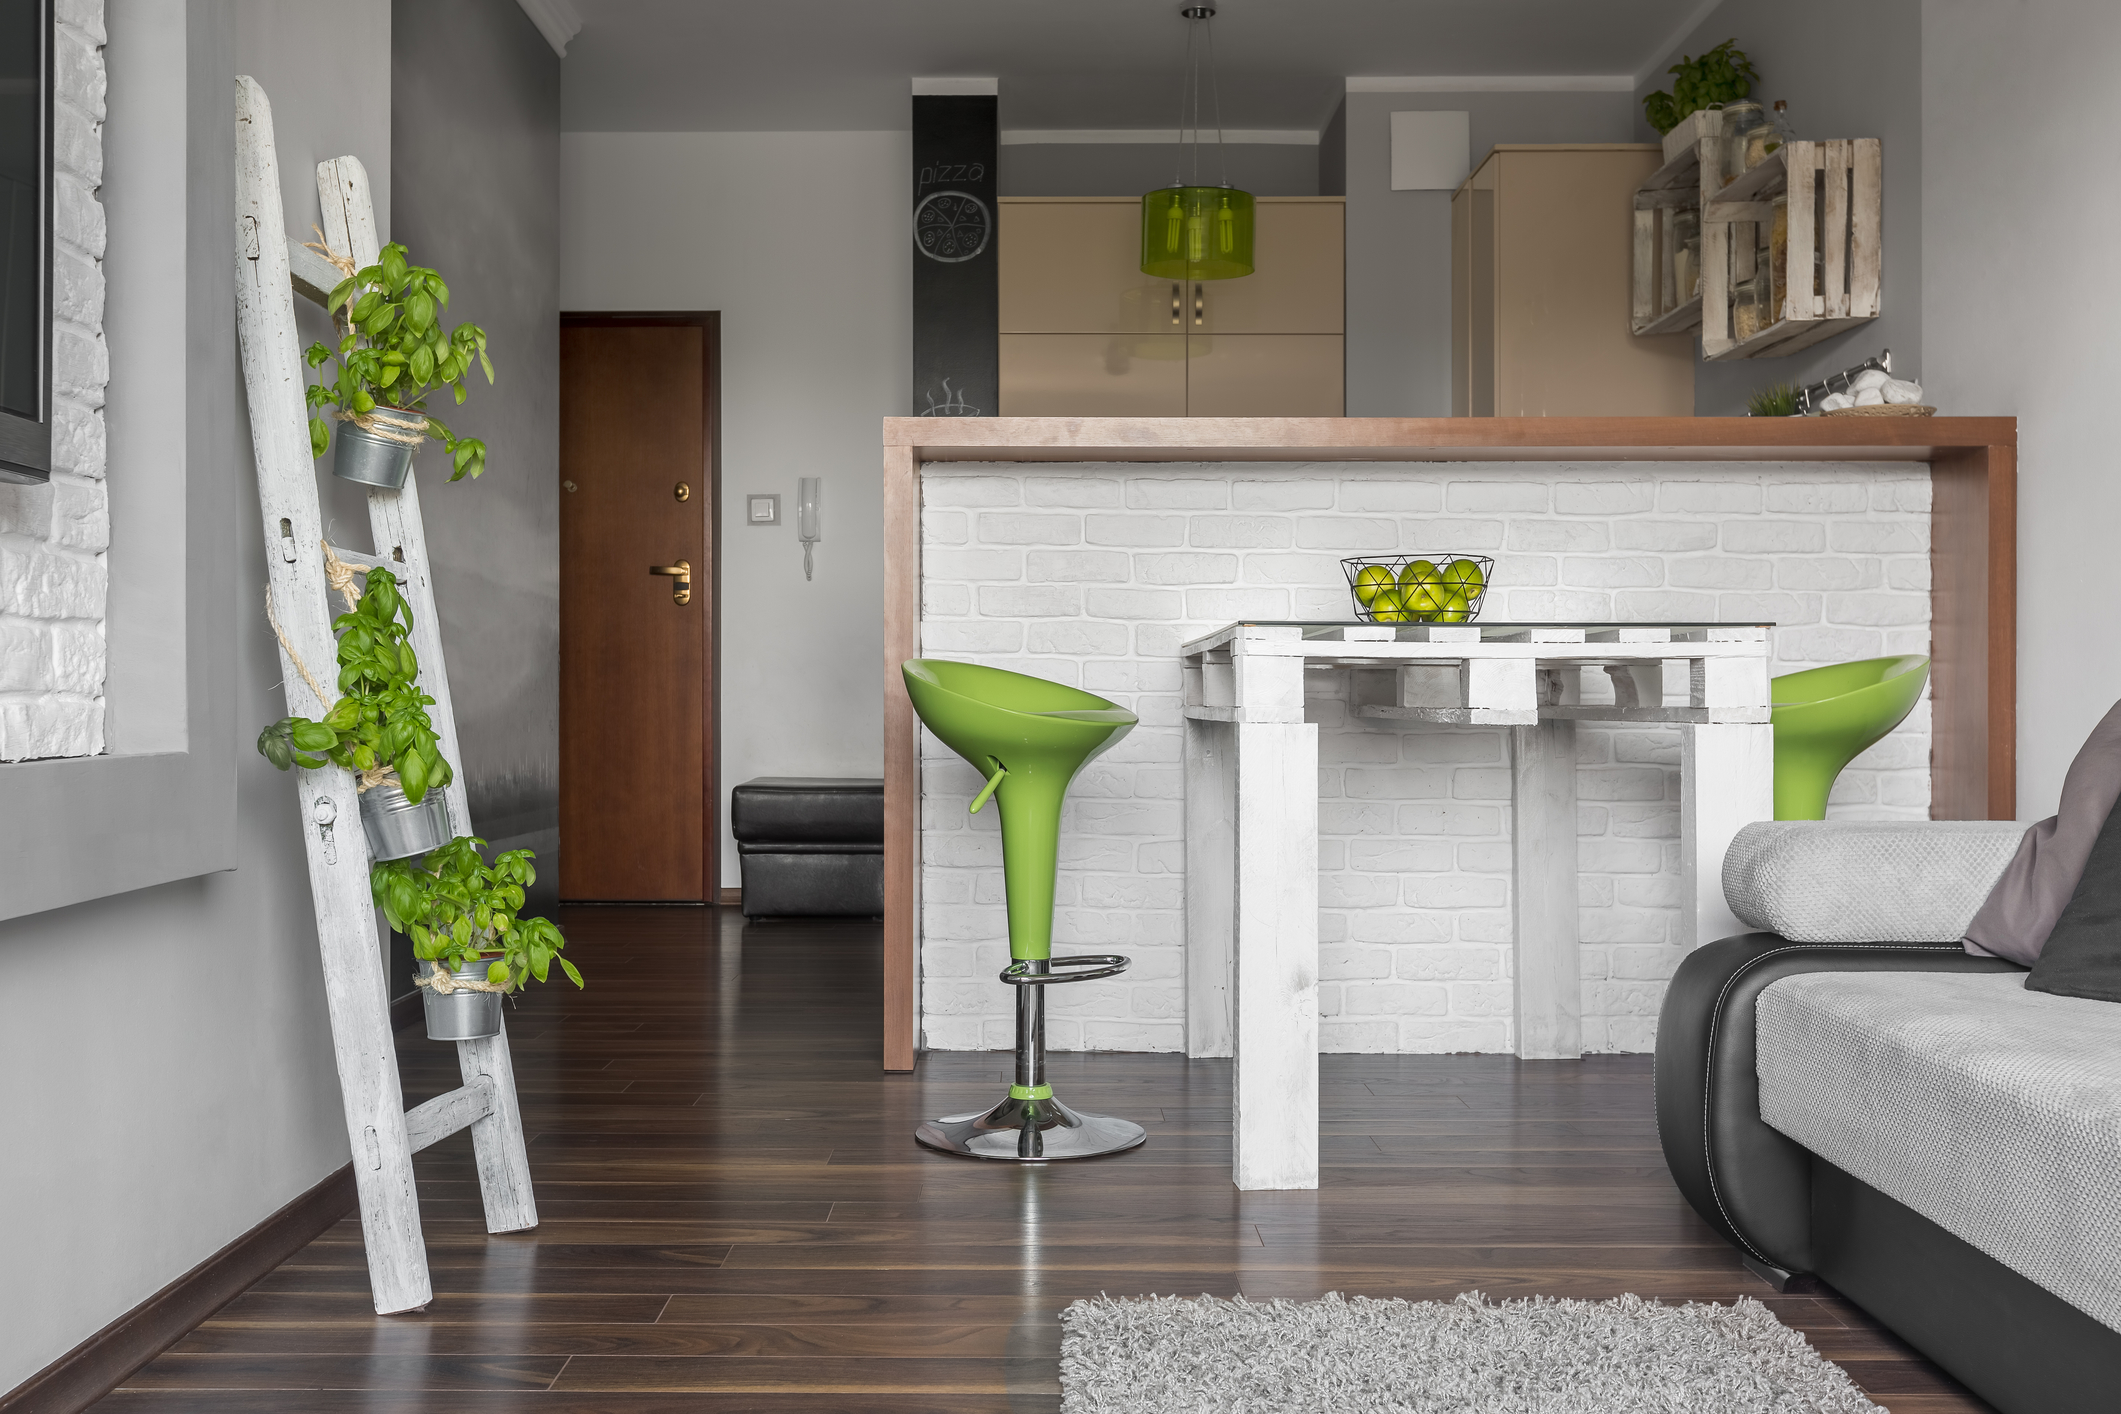 New design flat with open kitchen, blackboard, small dining set, sofa and decorative green details